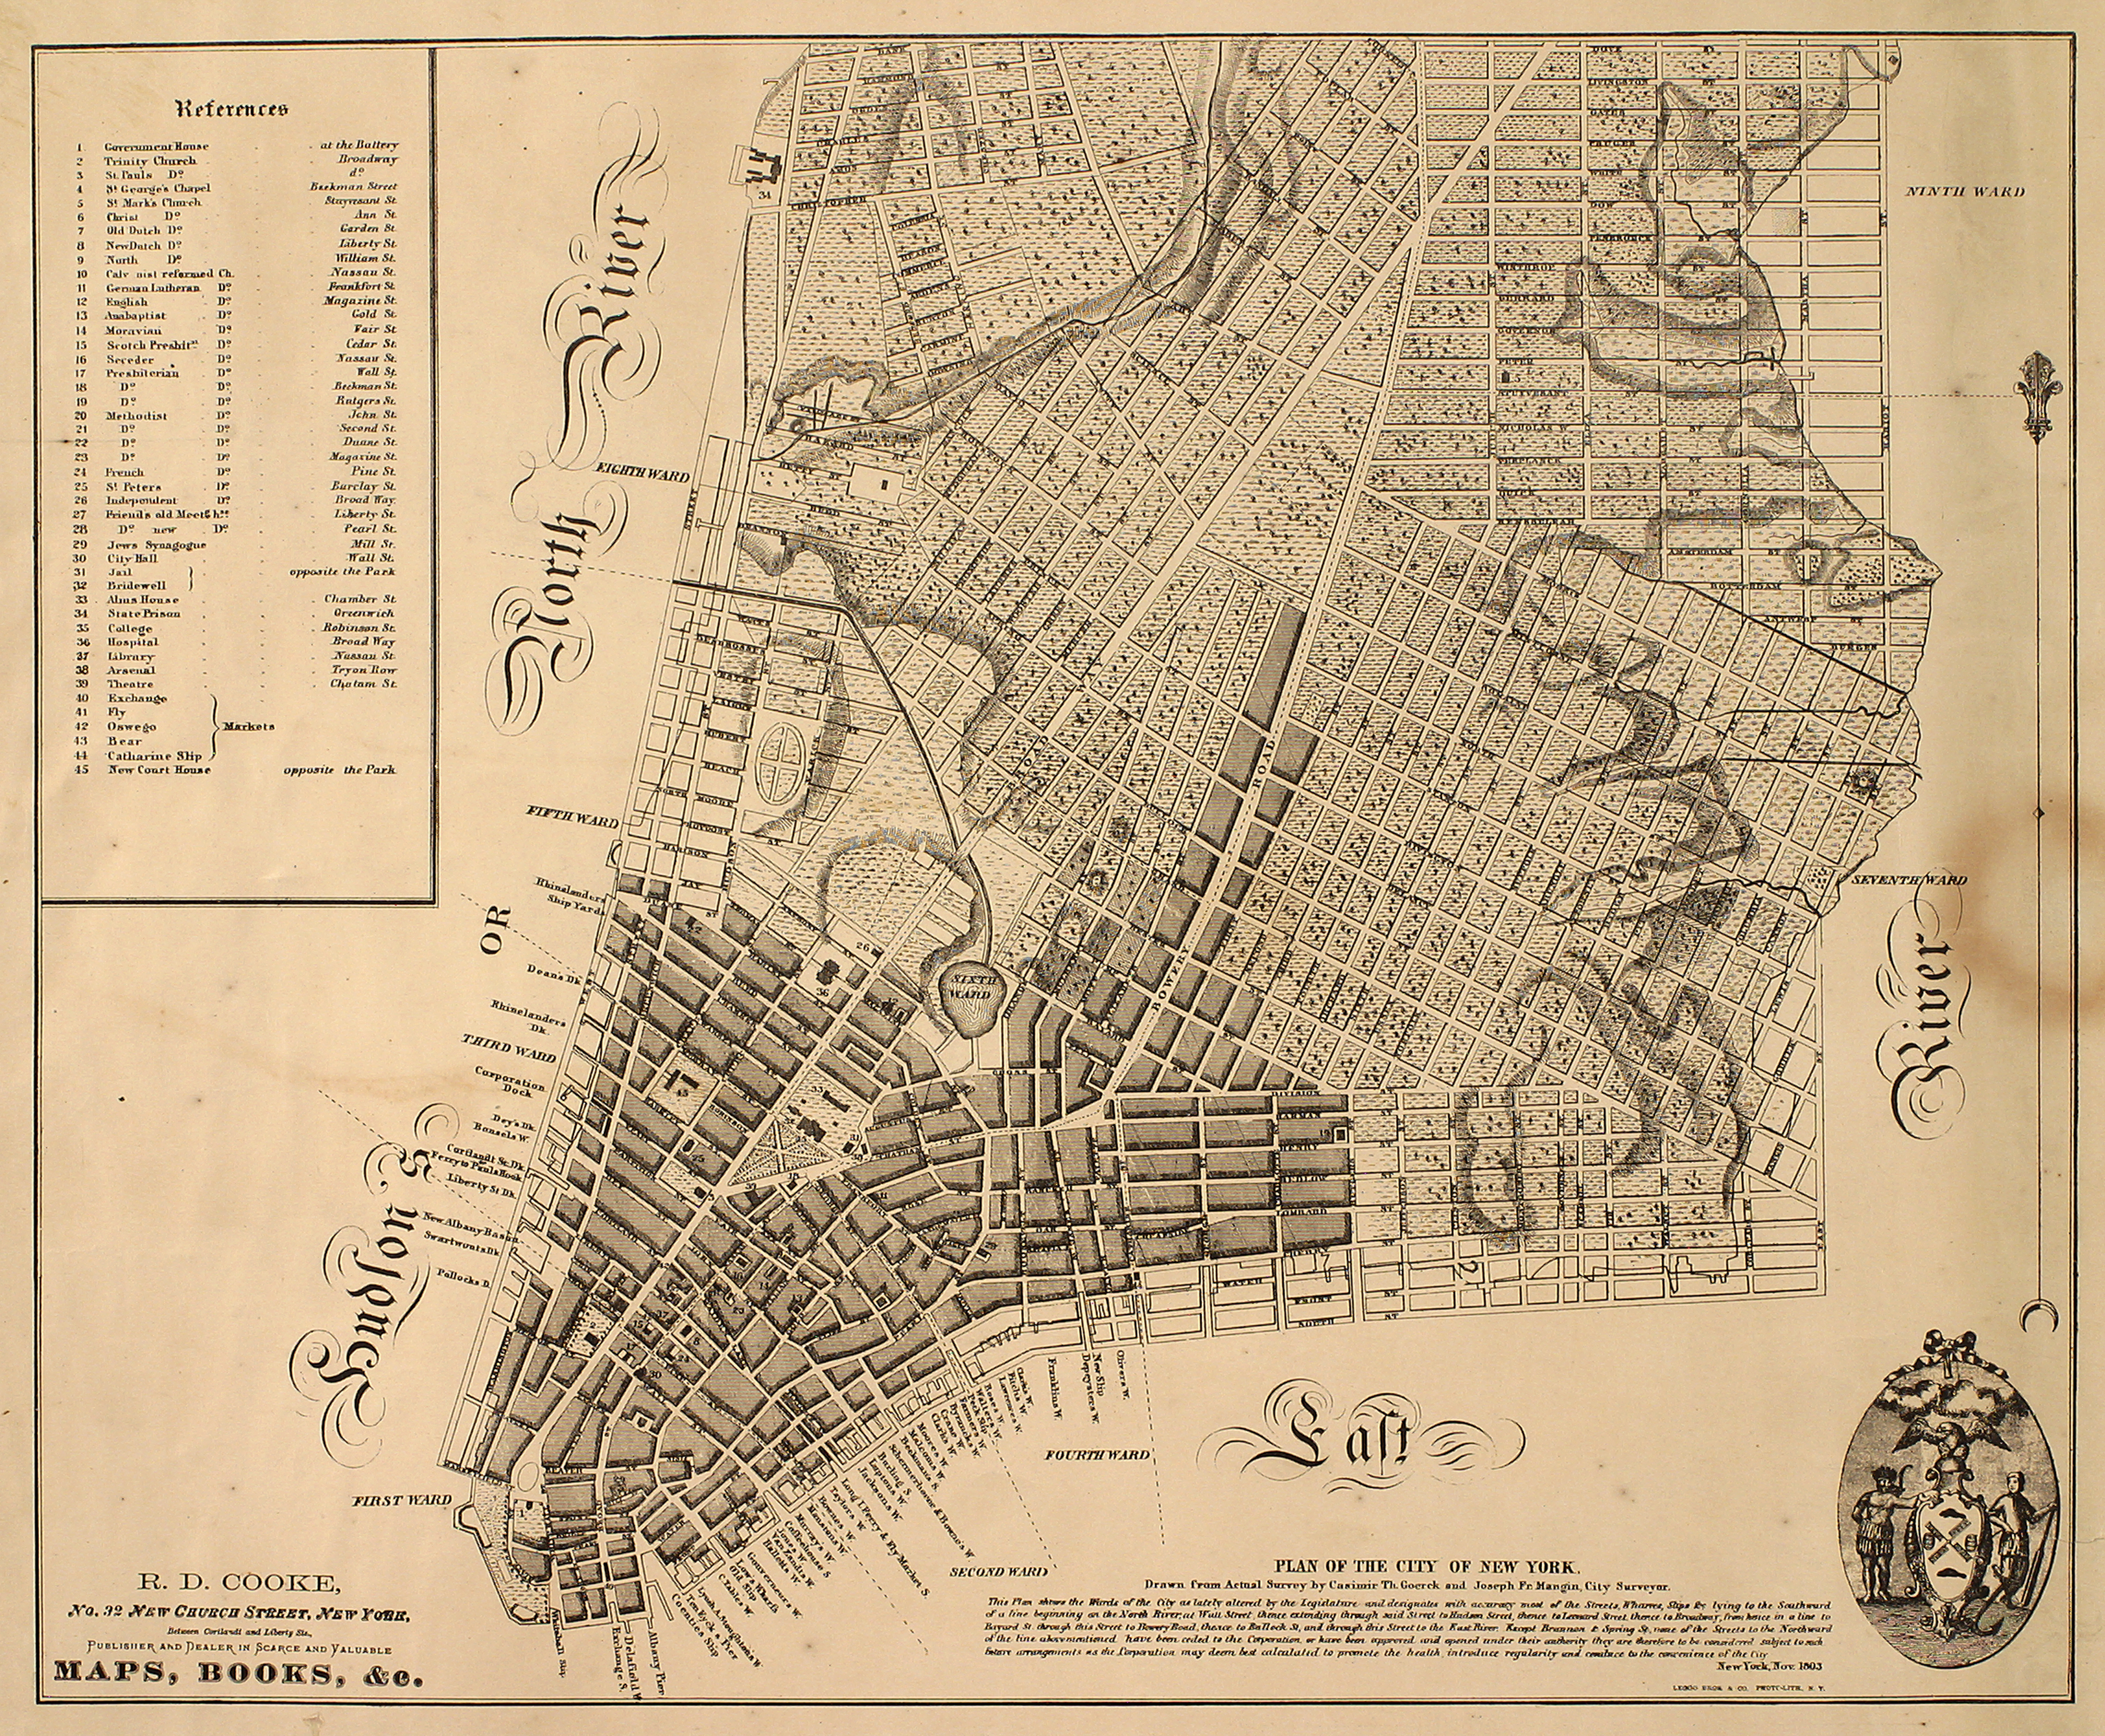 Plan of the City of New-York, as far north as East 31st Street, by William Hooke, 1817. Black ink on paper, backed with cloth by William Hooker.